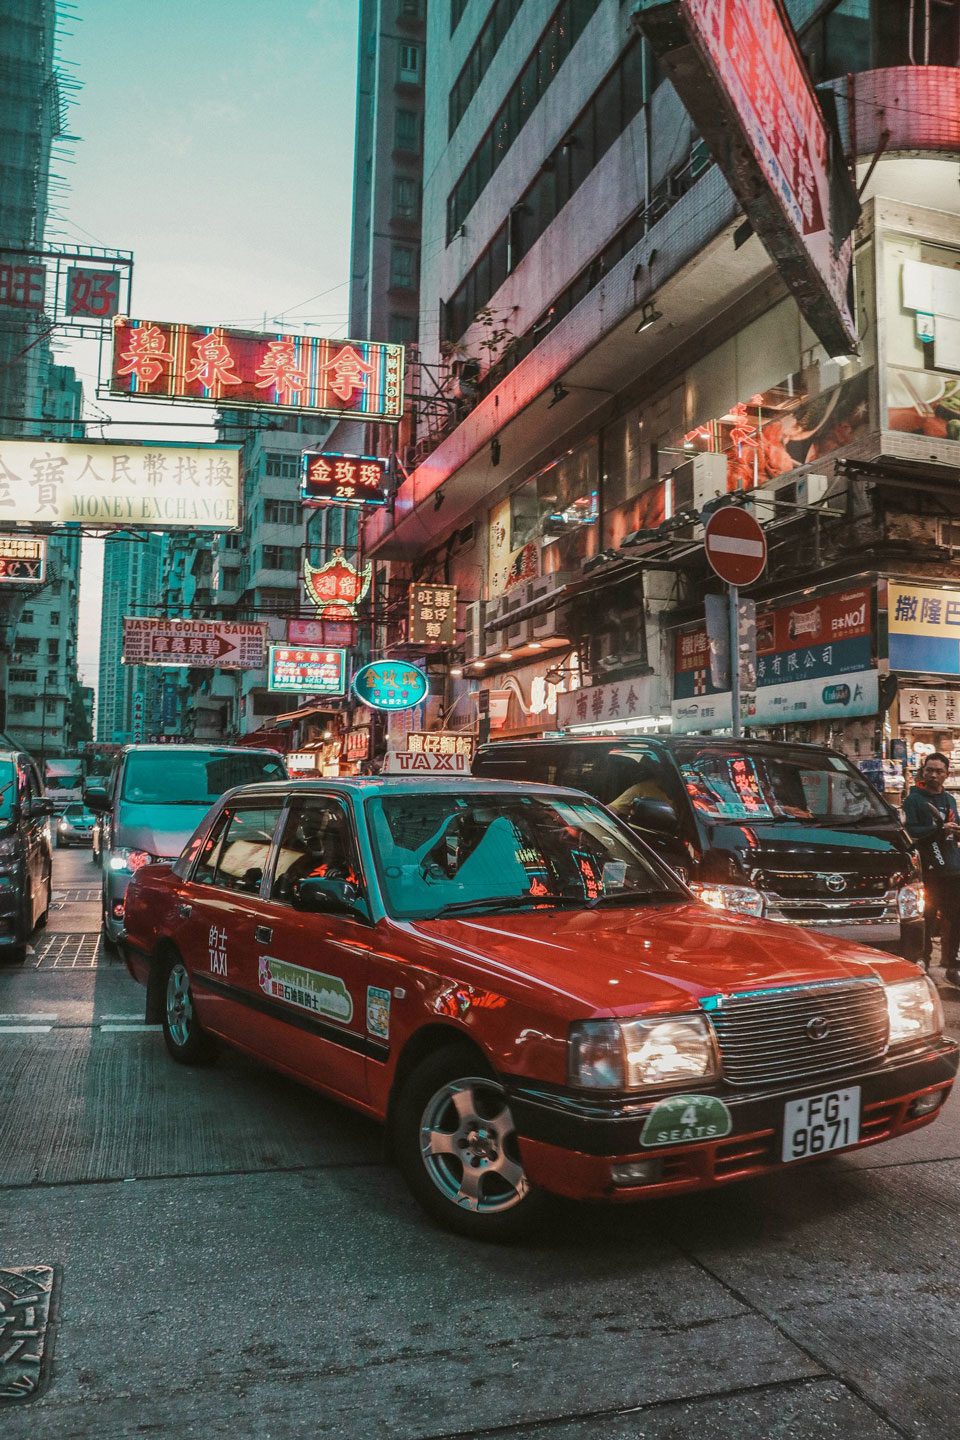 Small Group Tour: Kowloon Street Food & Culture Tour